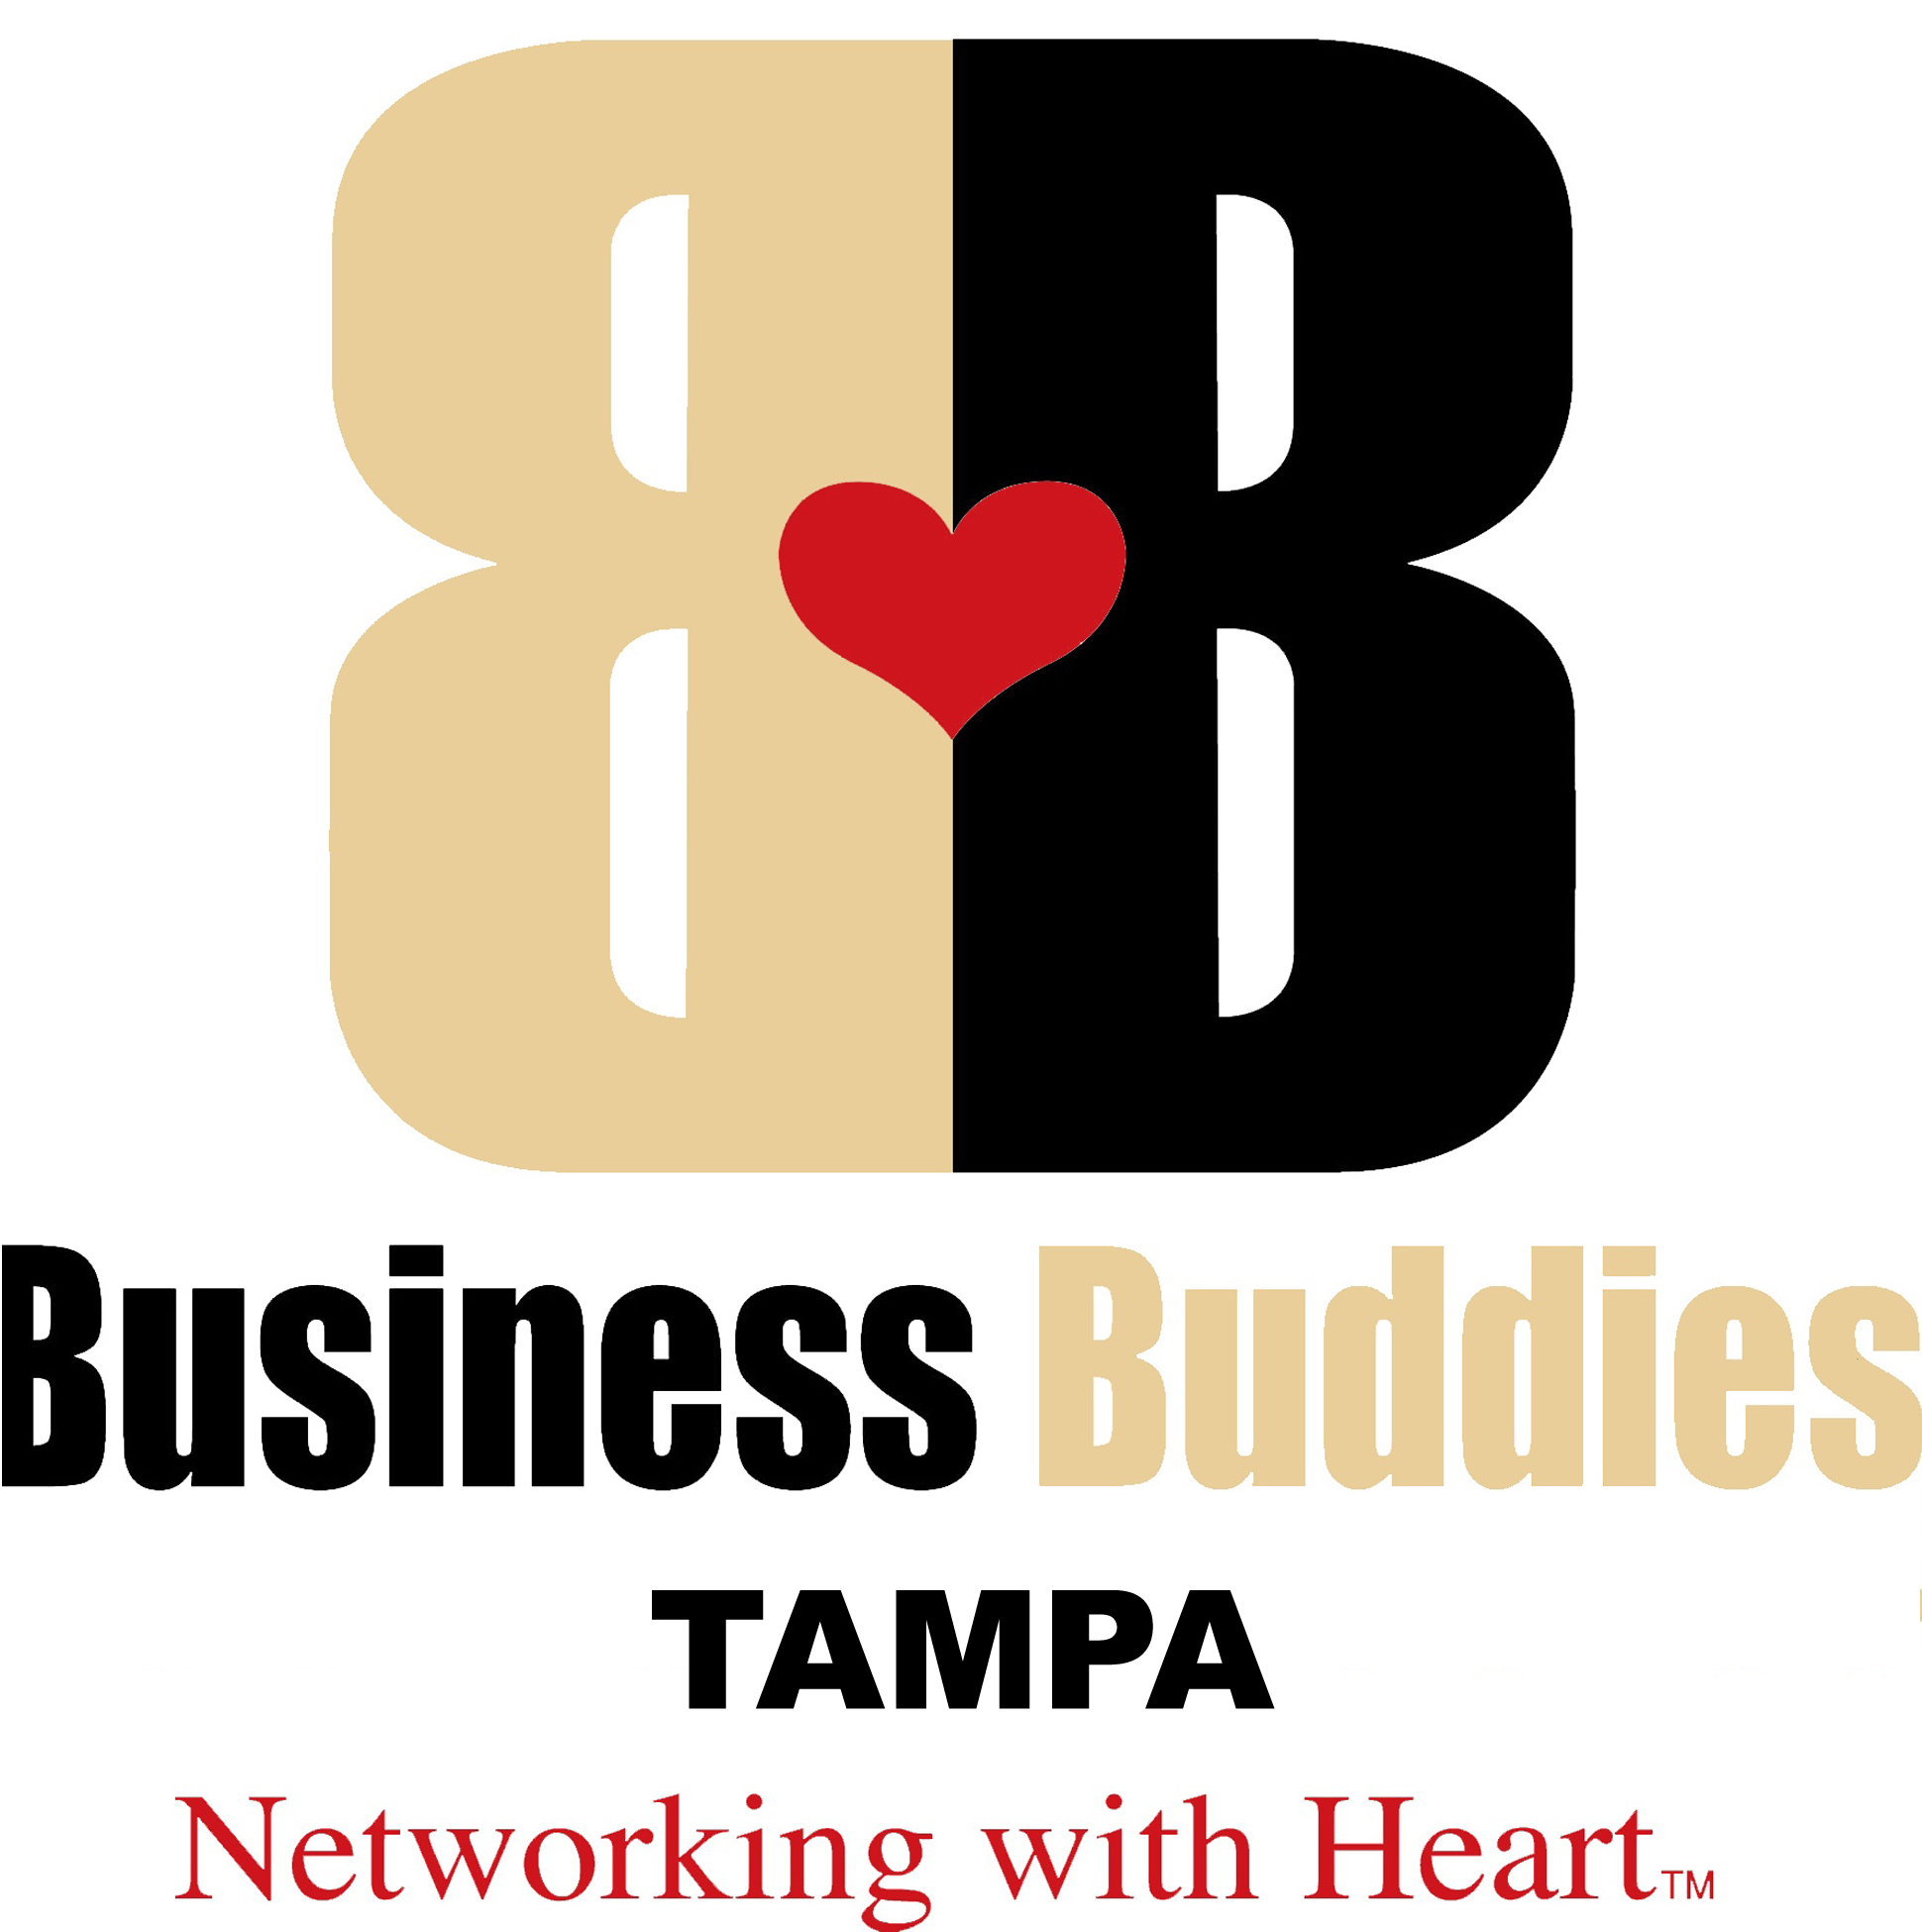 Business Buddies Tampa logo